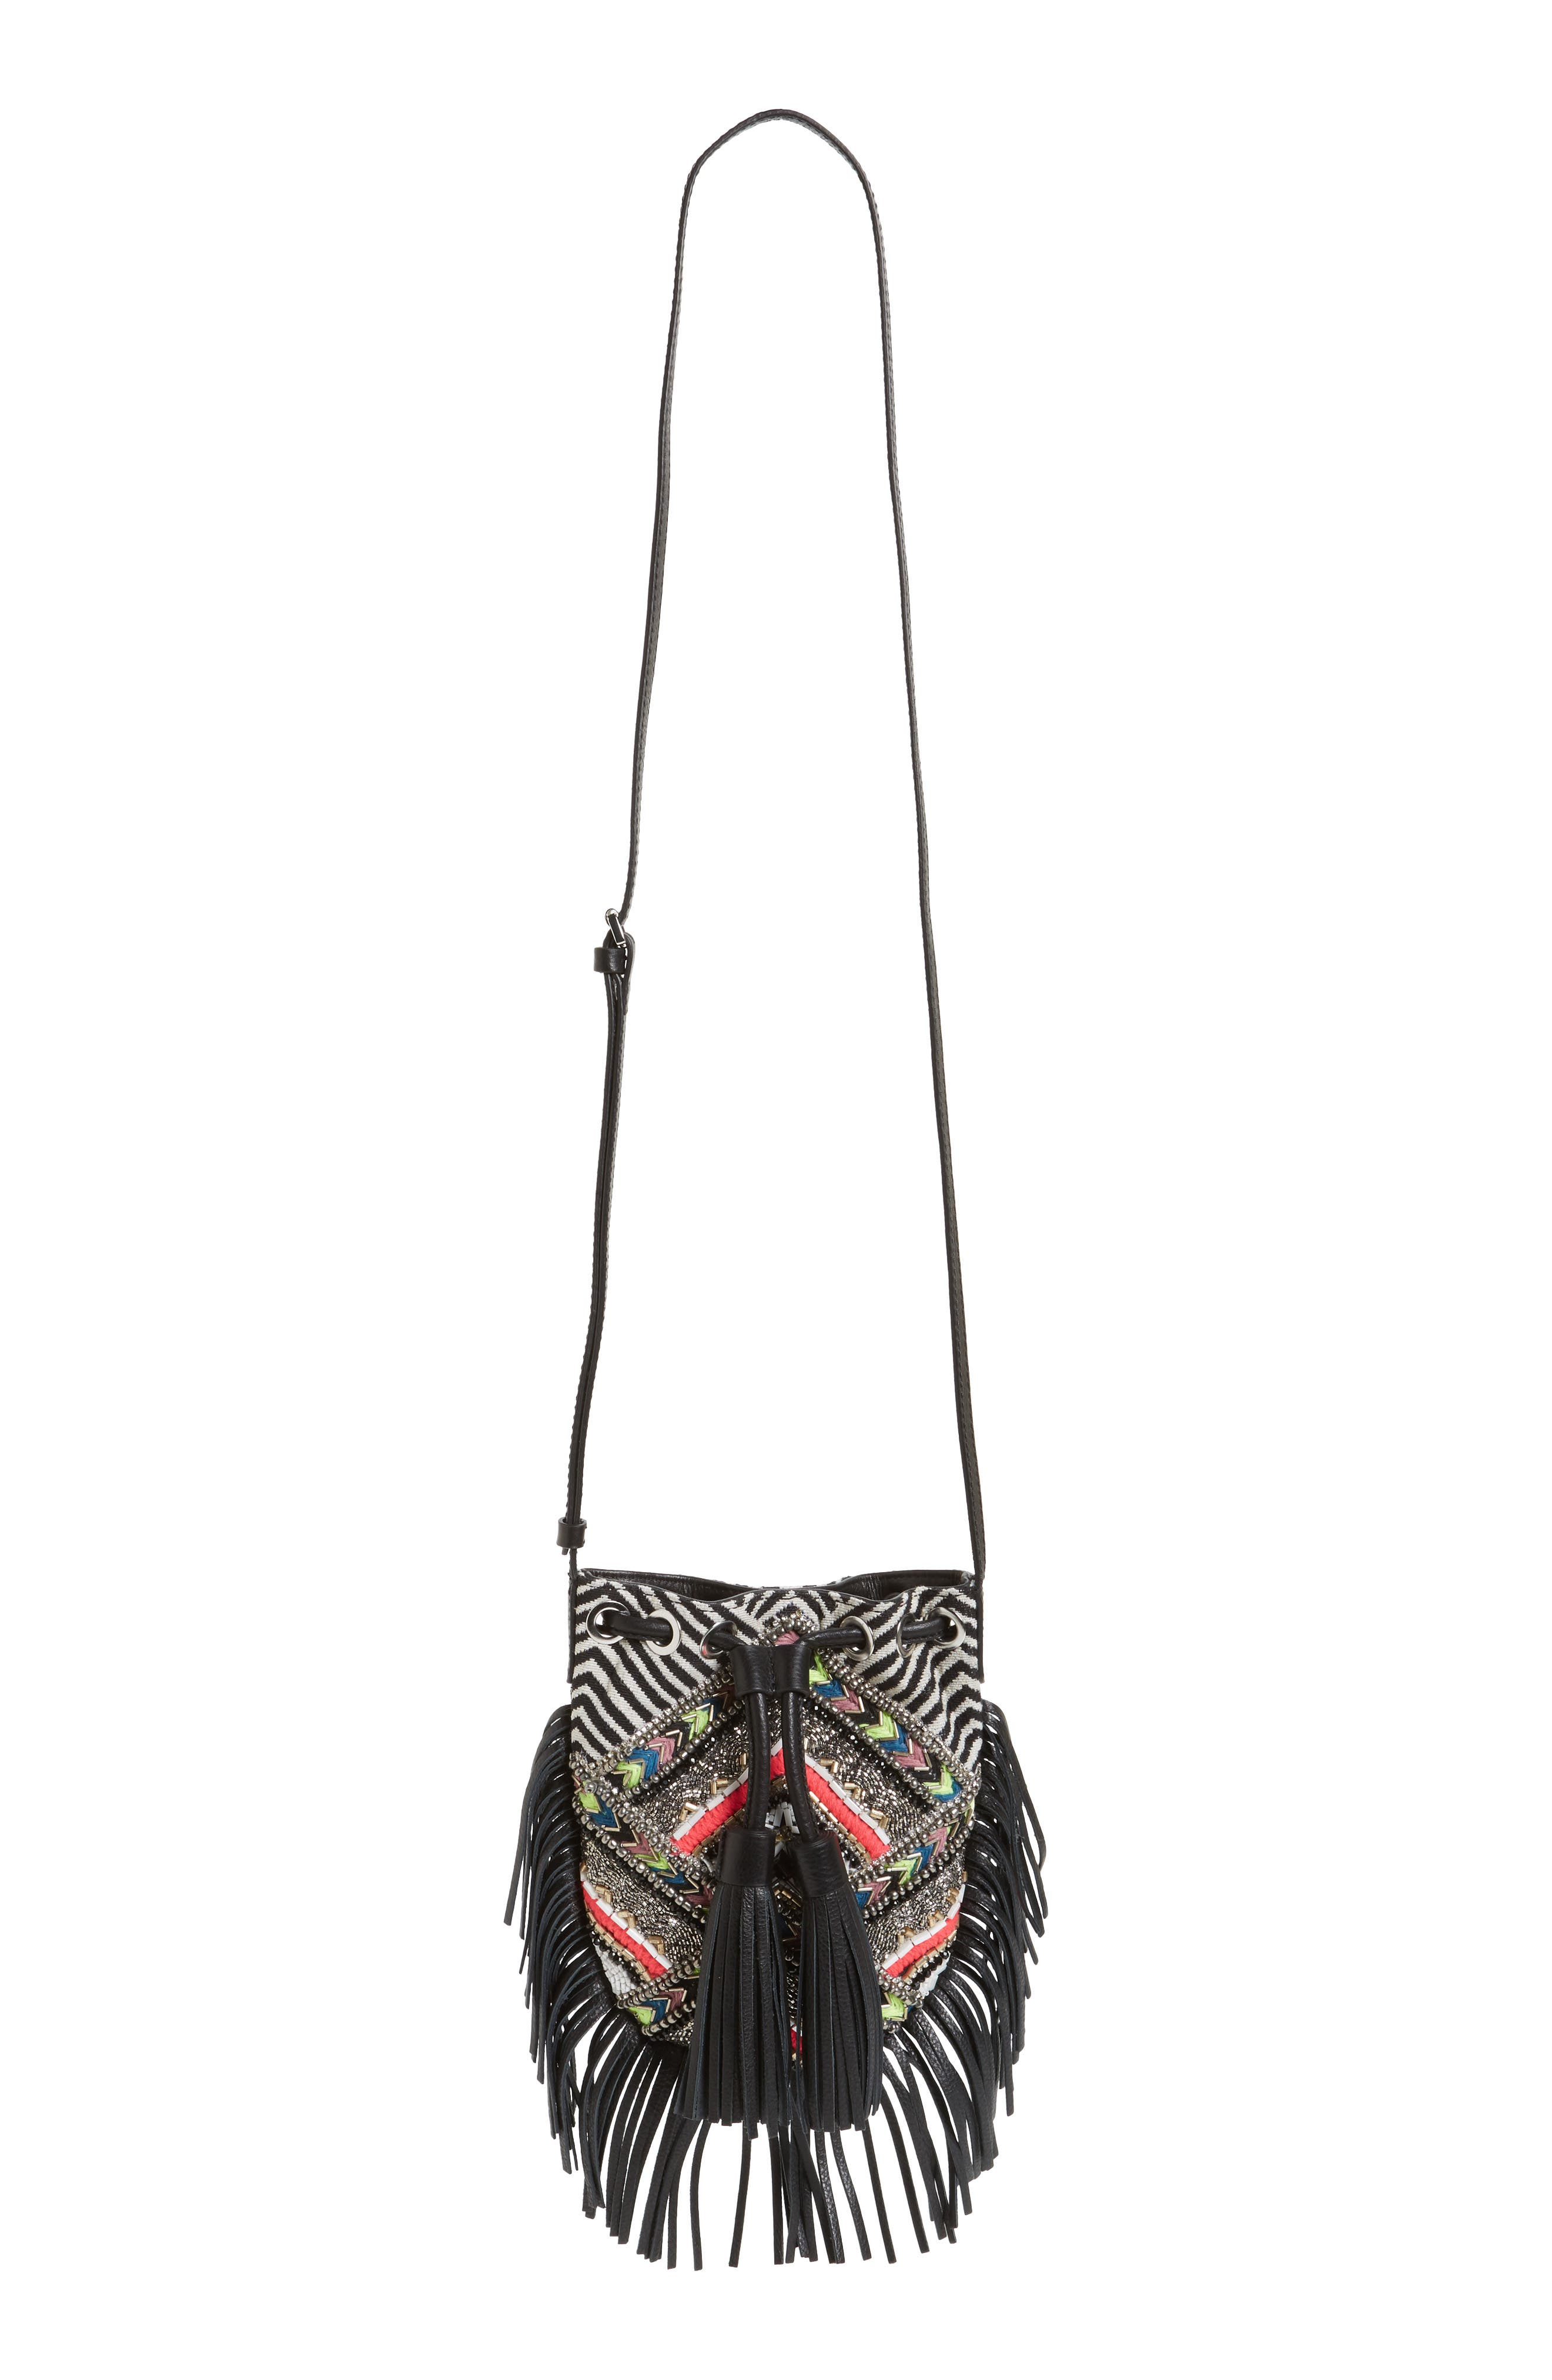 Alternate Image 1 Selected - Rebecca Minkoff Wonder Phone Canvas Crossbody Bag